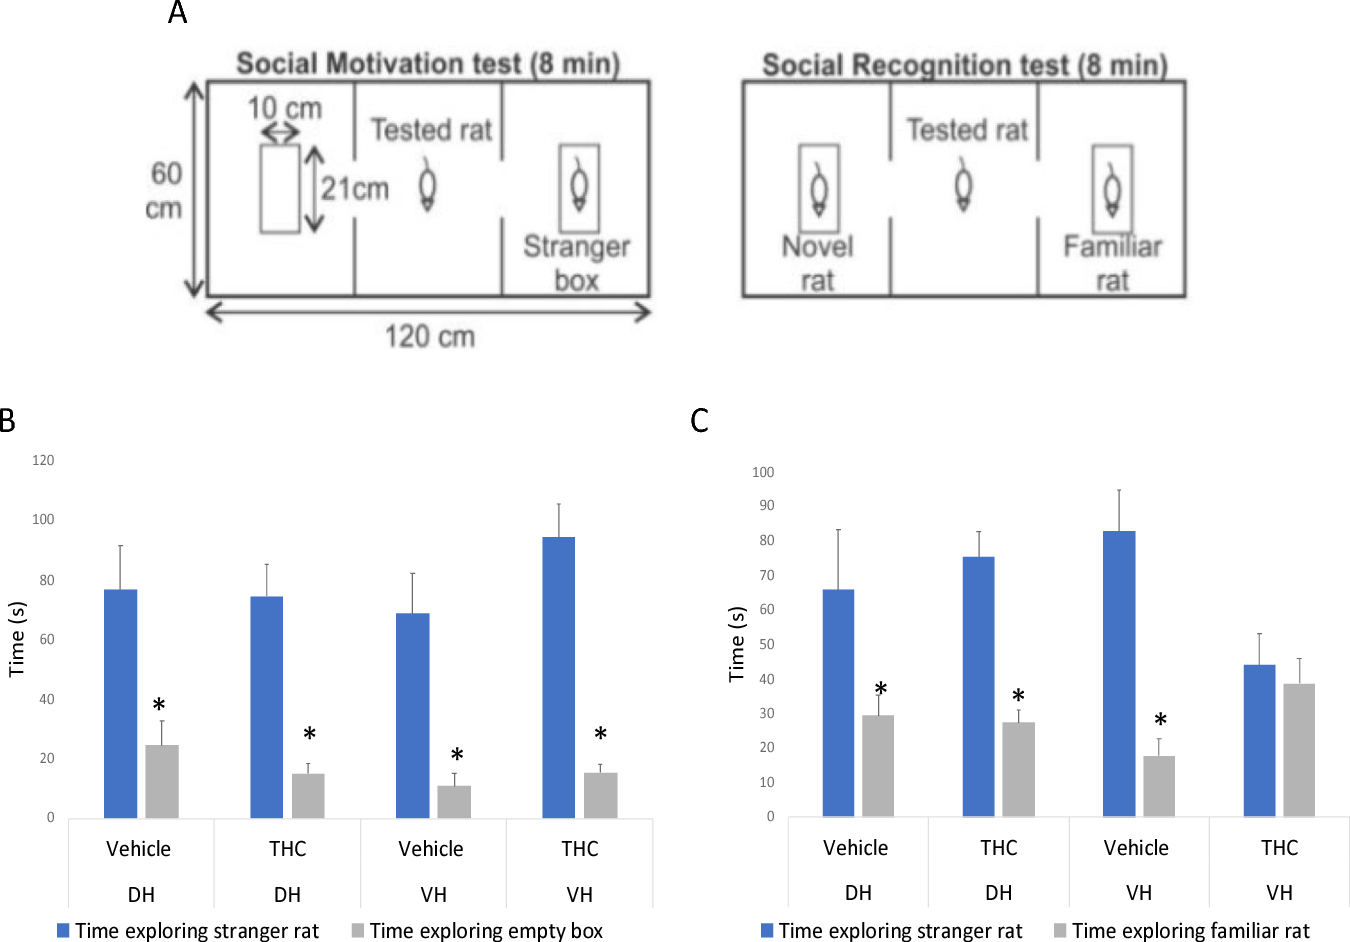 Figure 8 Social Interaction. A) Schematic of social interaction arena. B) Social Motivation test: All rodents spent significantly longer time exploring the stranger rat as opposed to the empty box. C) Social Recognition test: Rodents